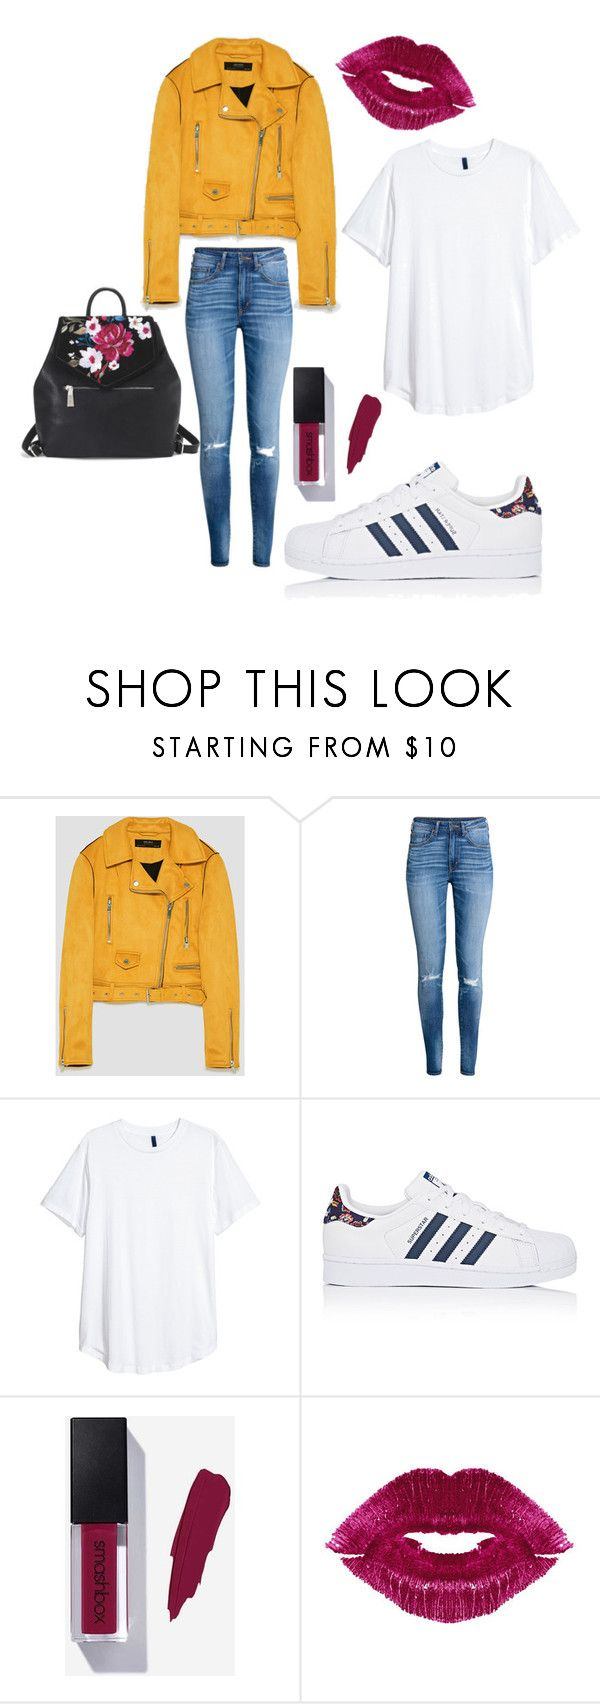 """#254"" by lapetitenene ❤ liked on Polyvore featuring H&M, adidas, Manic Panic NYC, White House Black Market, sneakers and laidback"